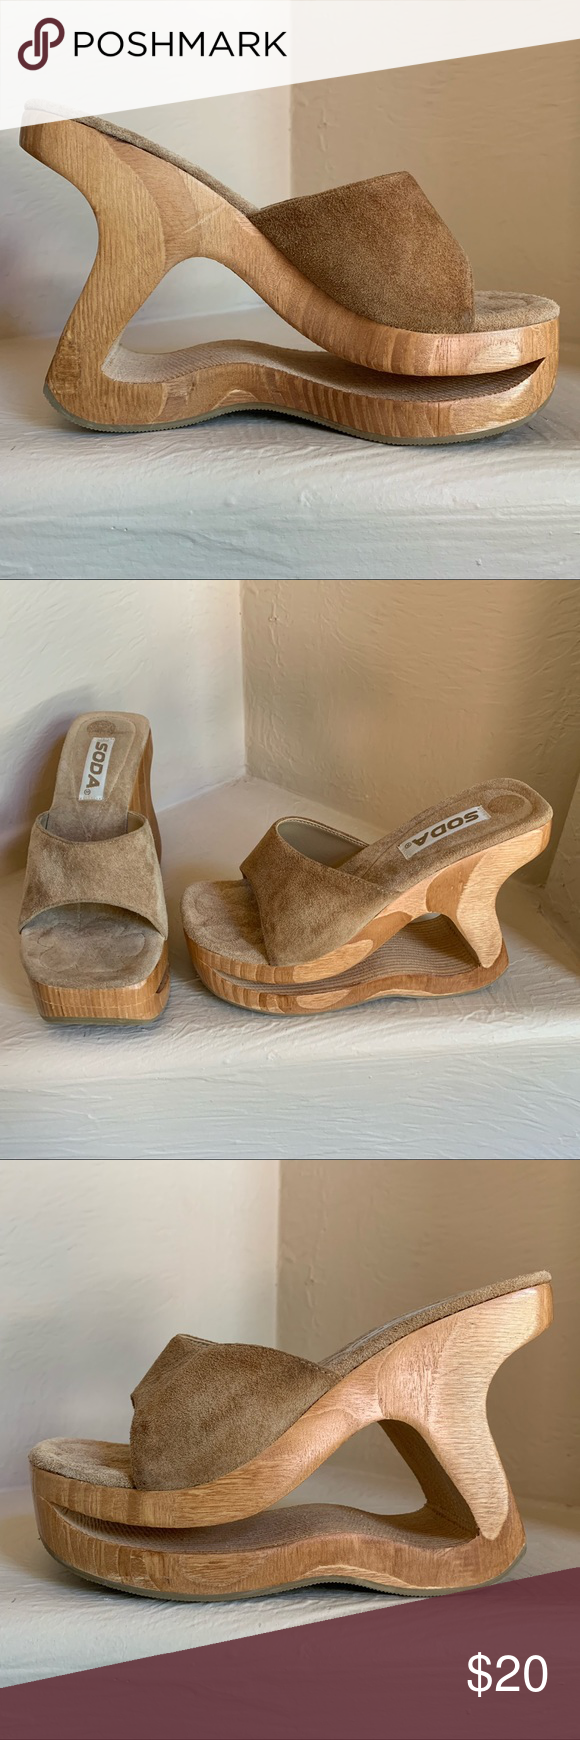 Suede Sandals with Wood Heel by Soda Unique suede sandal by Soda Comfortable carved wood cutout wedge 4 8243 heel Suede foot bed Size 5 5 Wood is in excel Suede Sandals w...